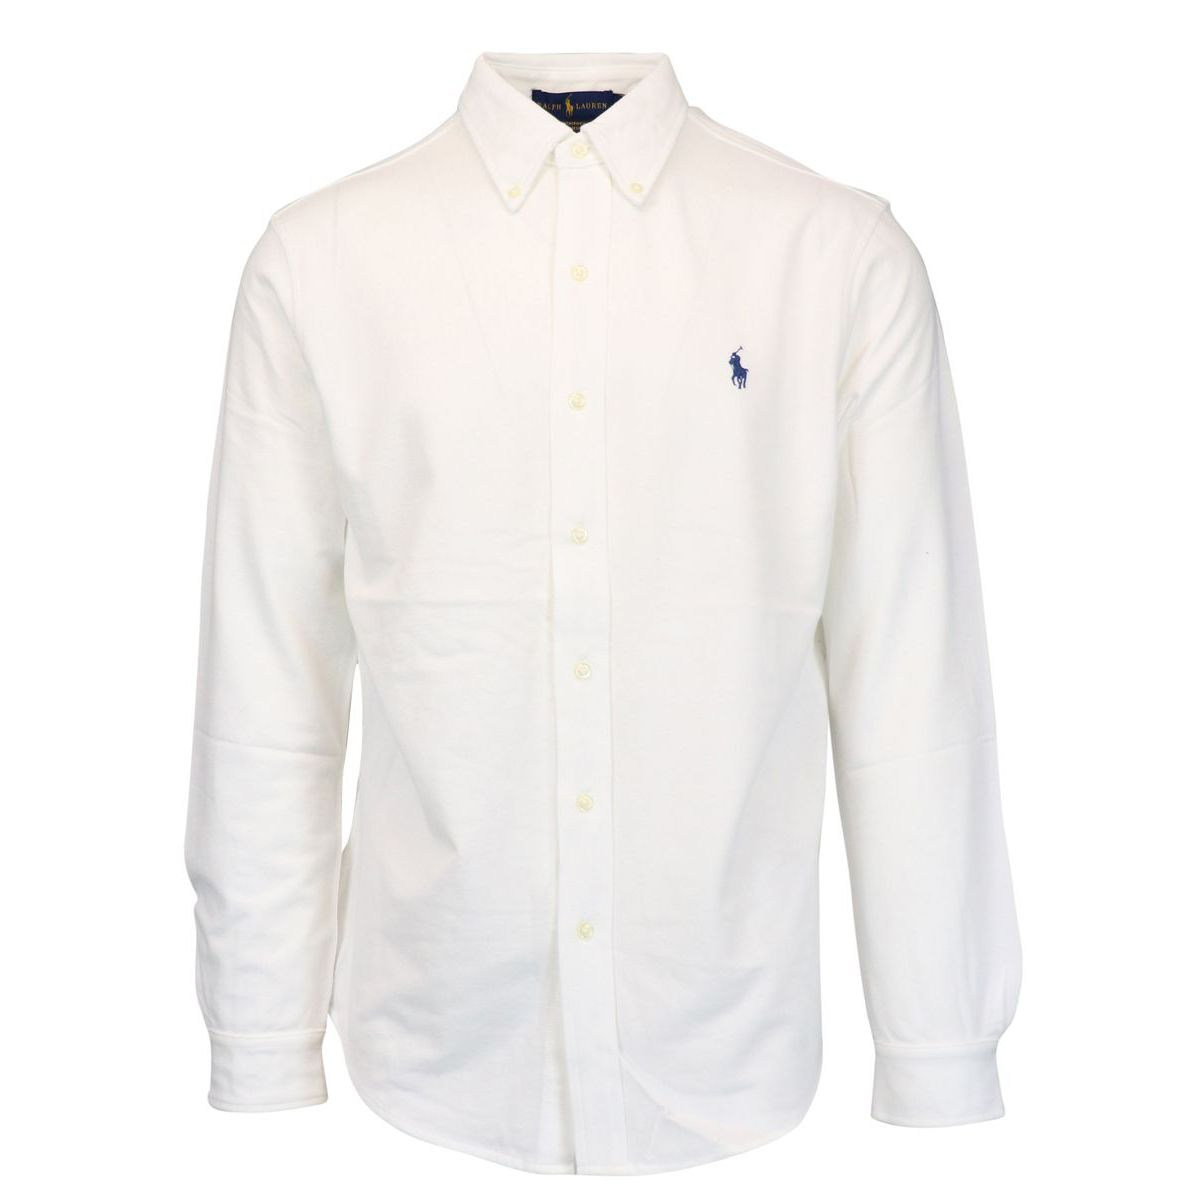 Regular-fit shirt in cotton piquèt with logo embroidery White Polo Ralph Lauren